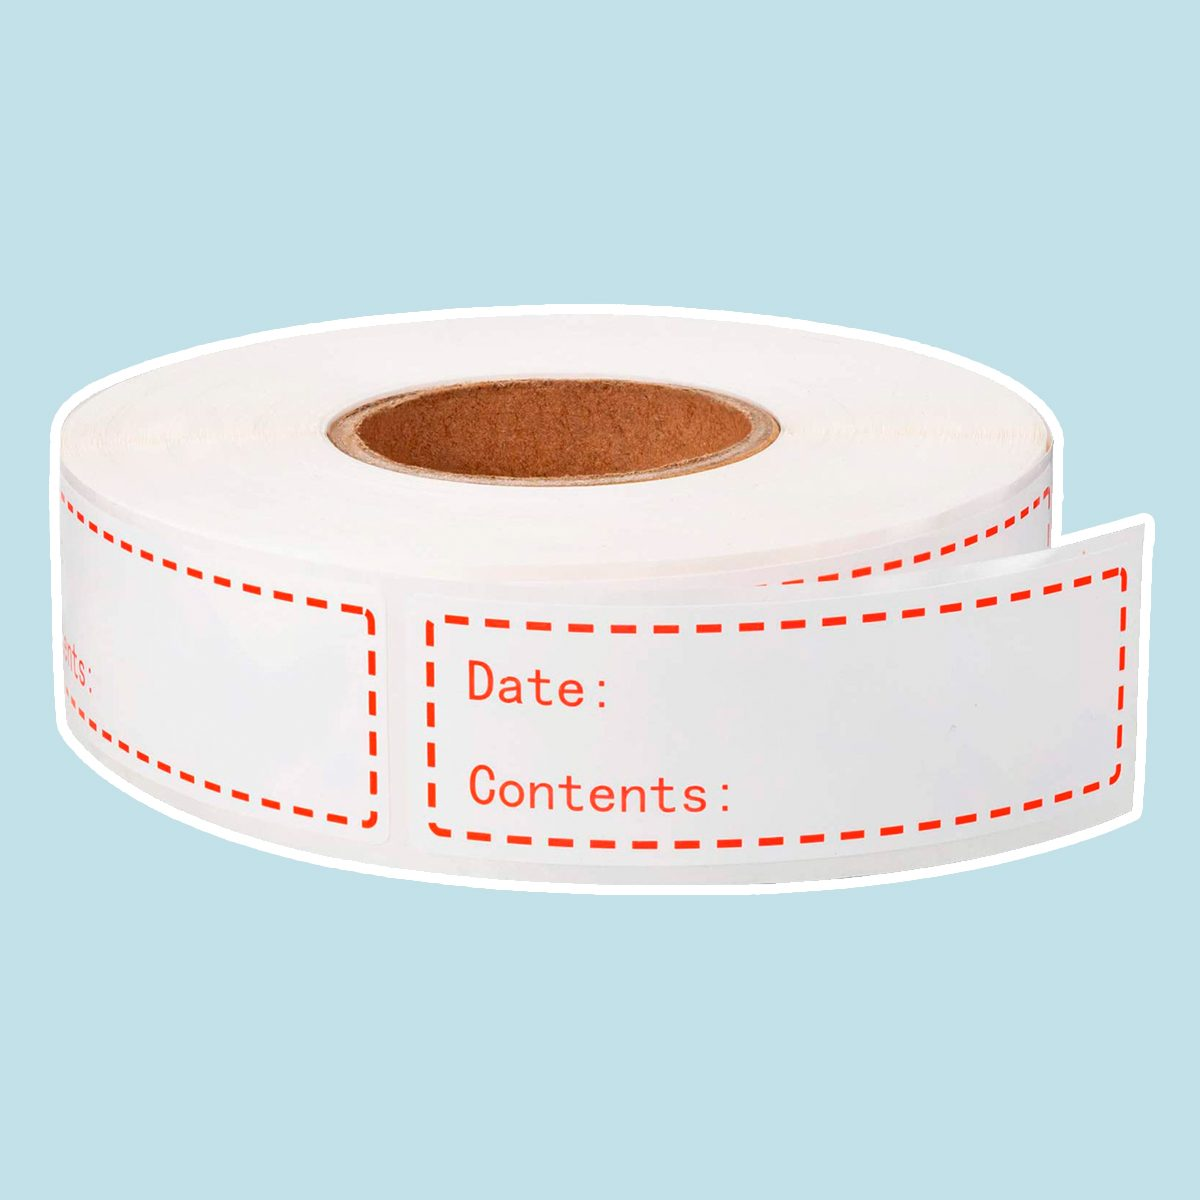 500 Pieces Food Freezer Labels 1 x 3 inches Self-Adhesive Removable Storage Refrigerator Food Date Labels